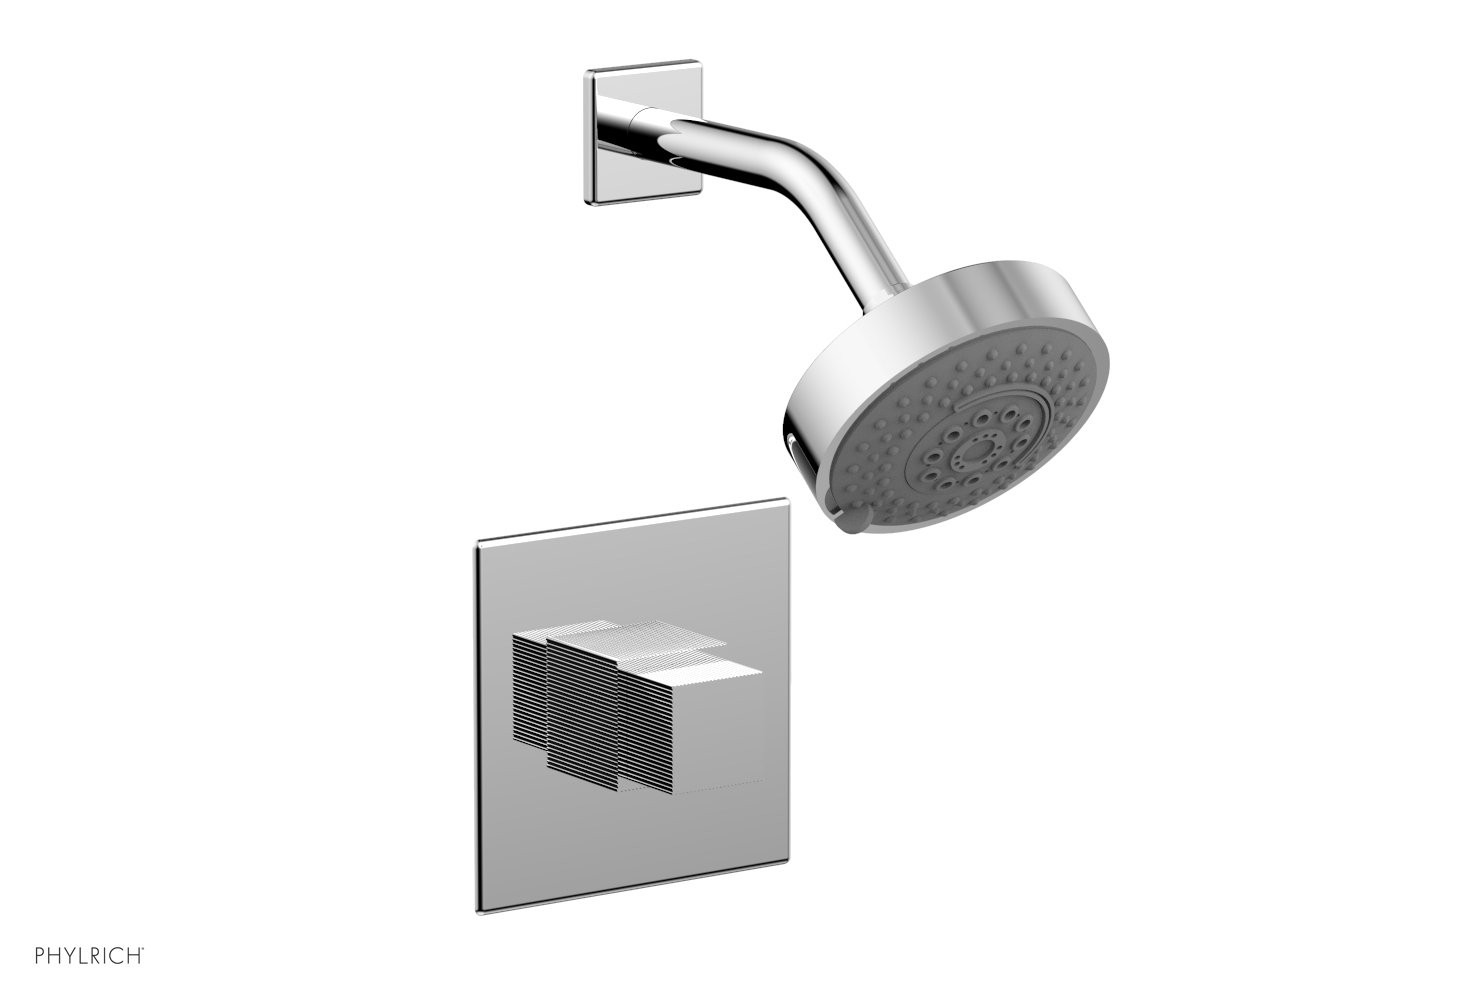 PHYLRICH 291-24 STRIA WALL MOUNT PRESSURE BALANCE SHOWER SET WITH CUBE HANDLE